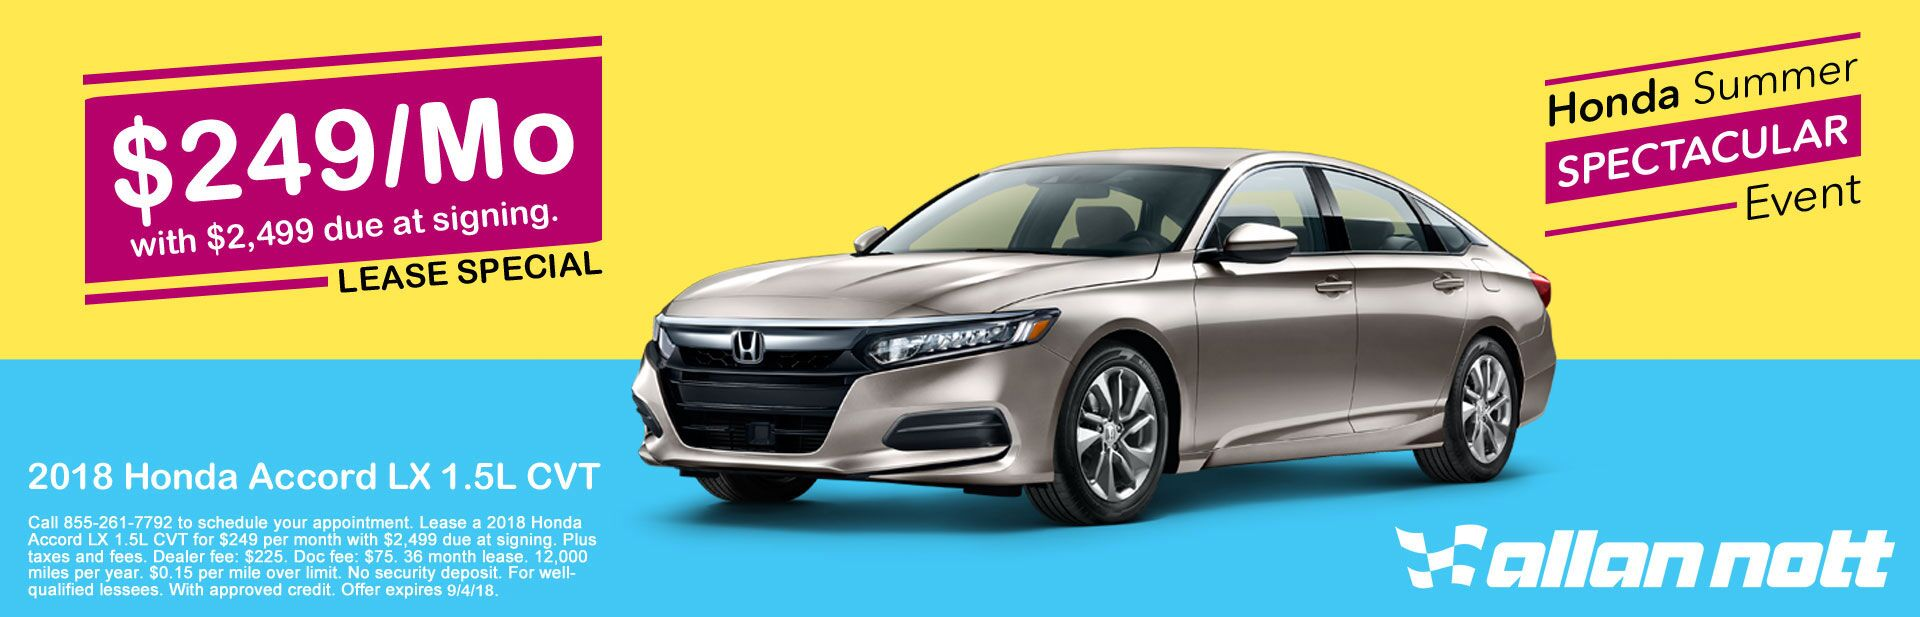 2018 Honda Accord LX 1.5L Lease Special